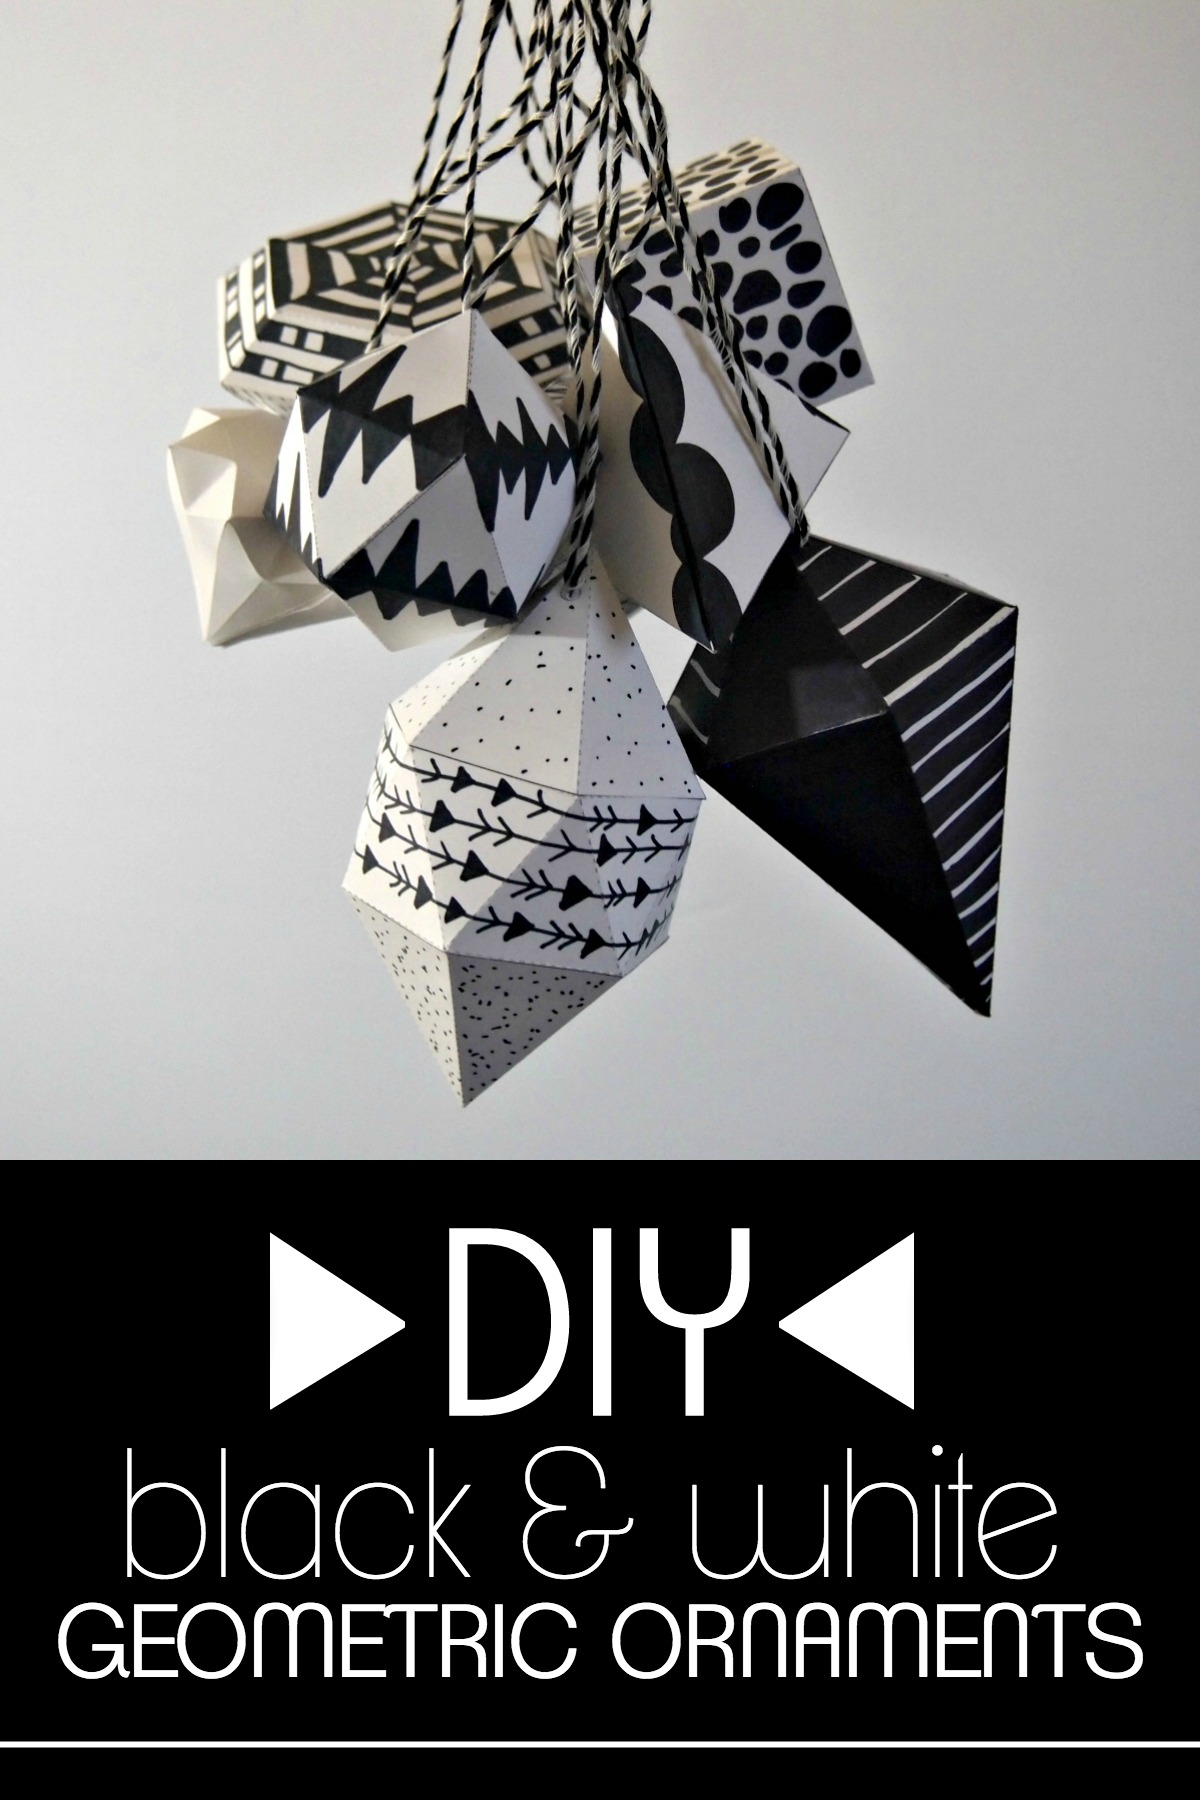 DIY black and white geometric ornaments